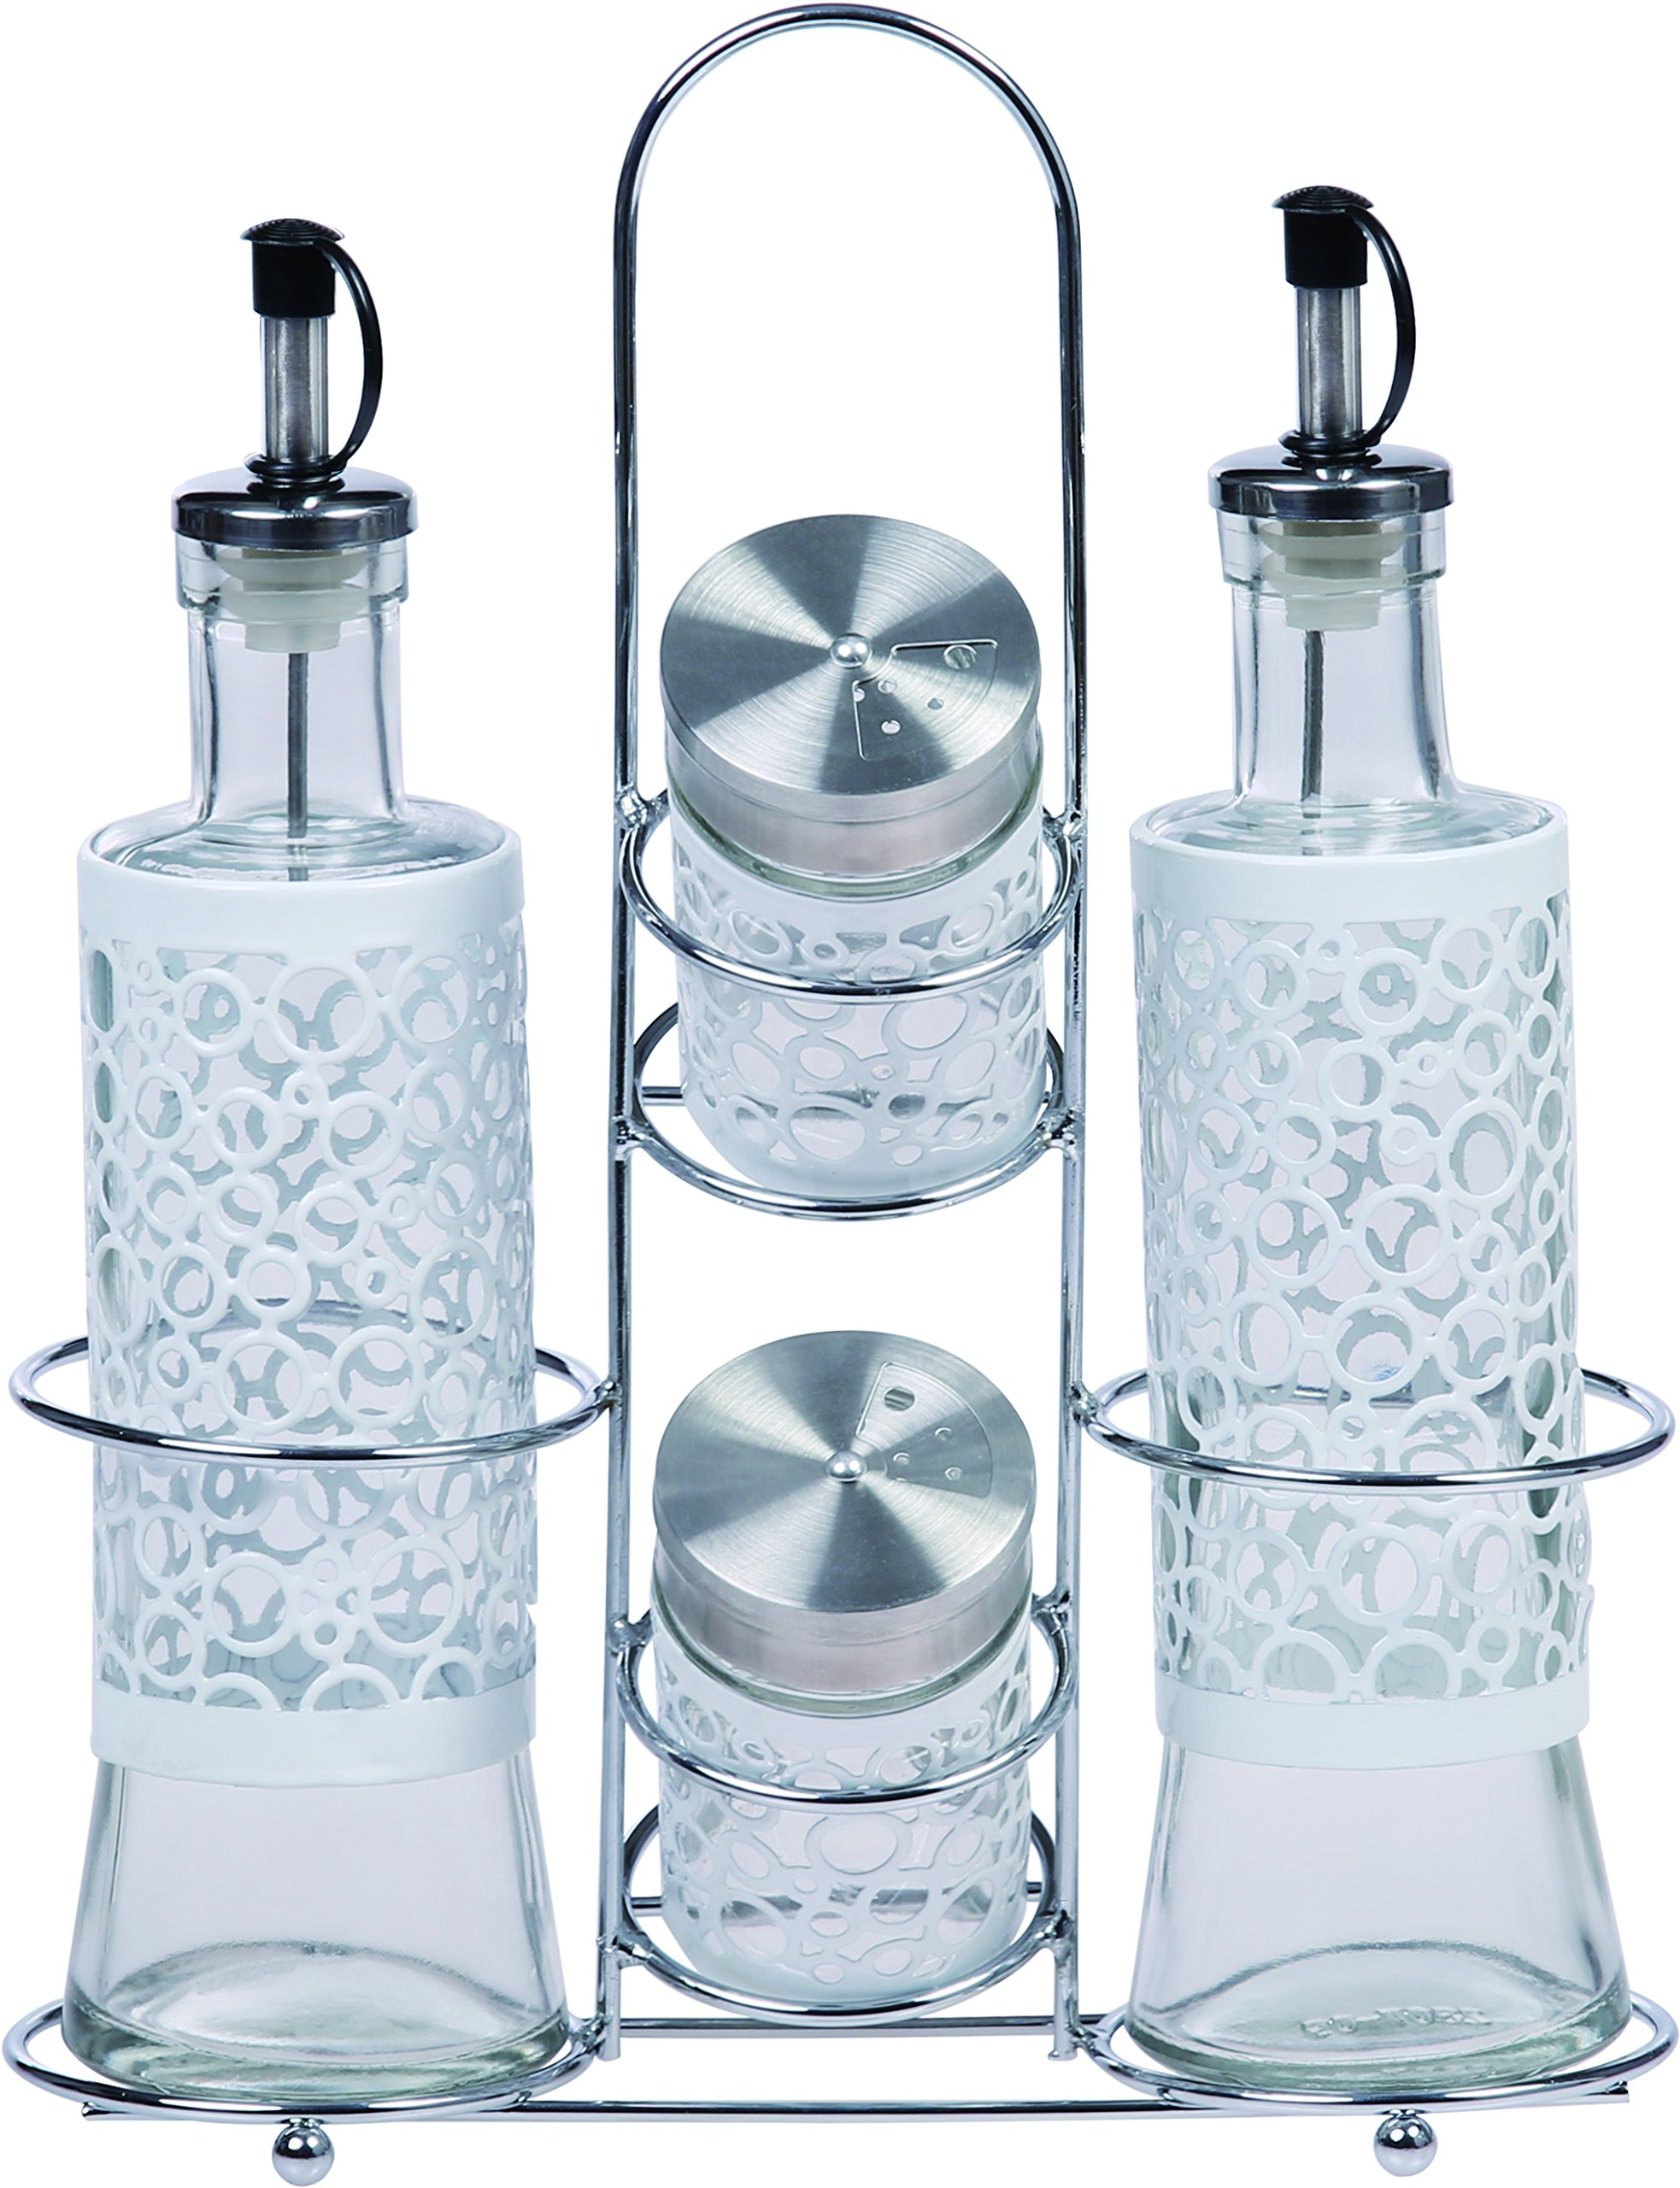 Ragalta USA RAG-G-014W 5 Piece Glass Condiment Set with Stainless Steel Rack Stand and Pour Spouts, White